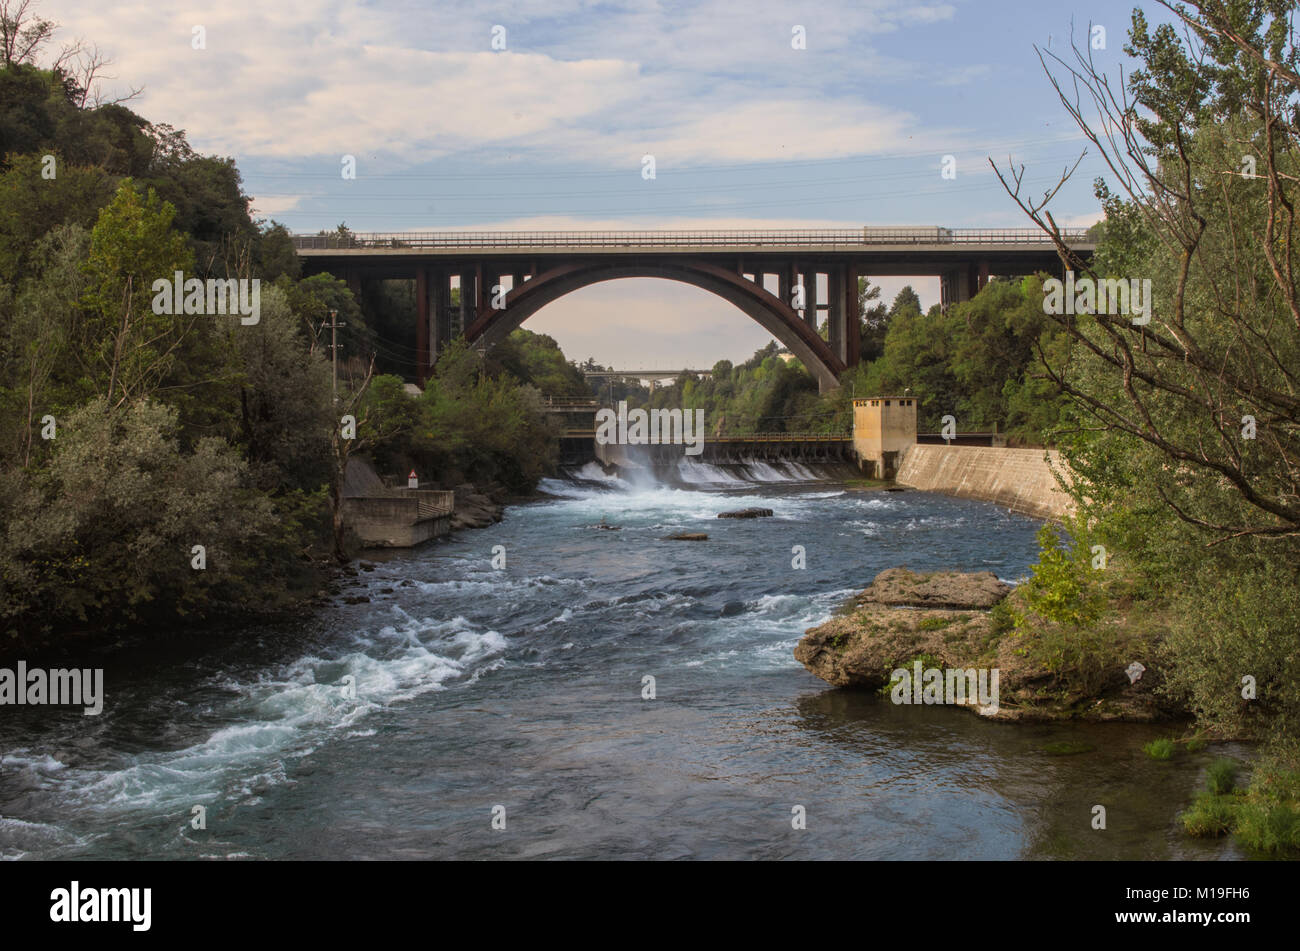 view of dam for hydroelectric power production and highway bridge on the Adda river Stock Photo